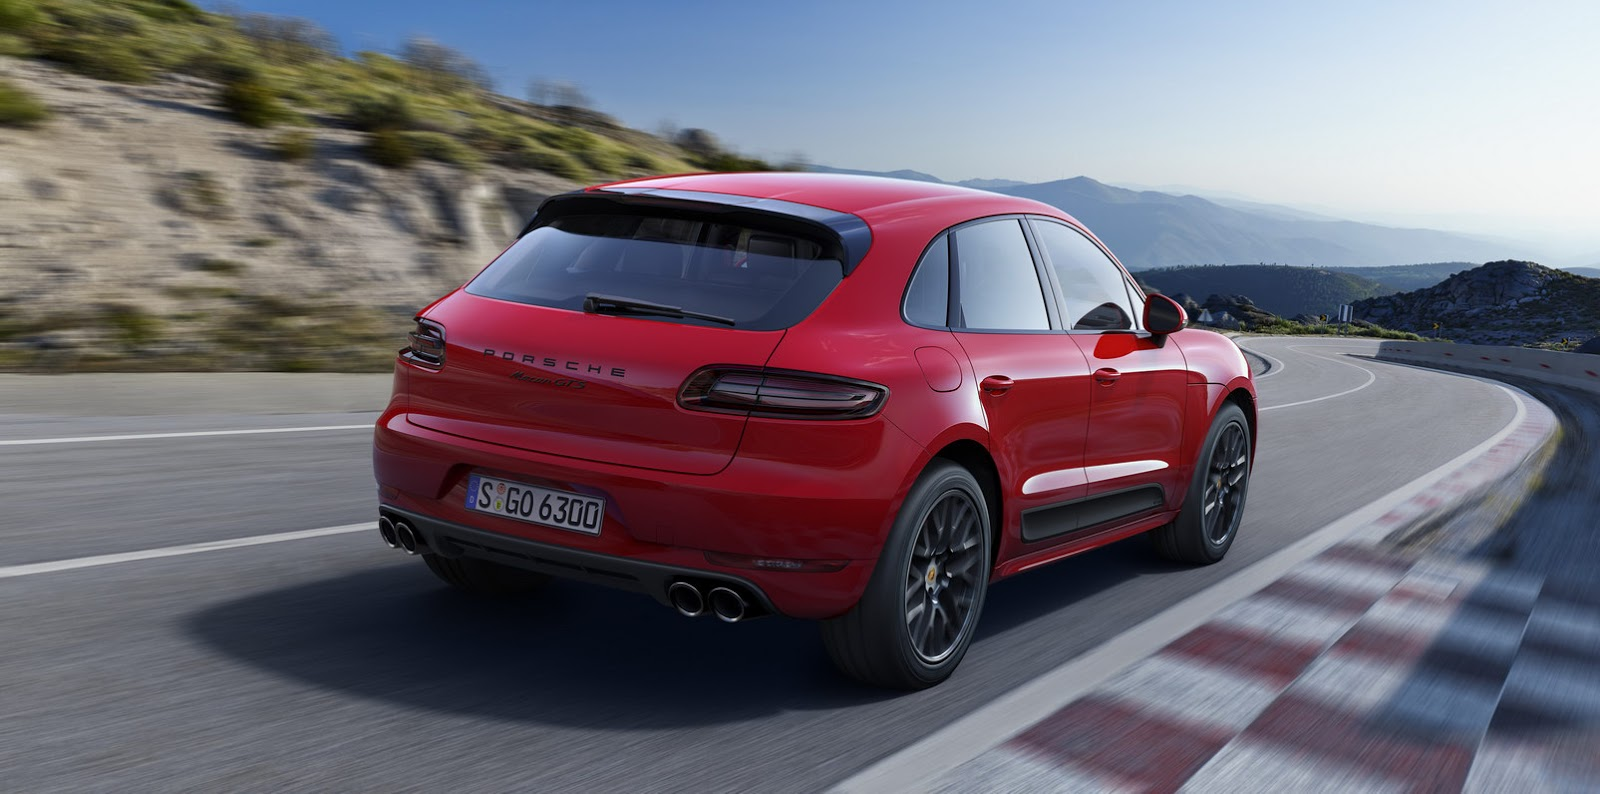 New Porsche Macan Gts Fills The Void Between S And